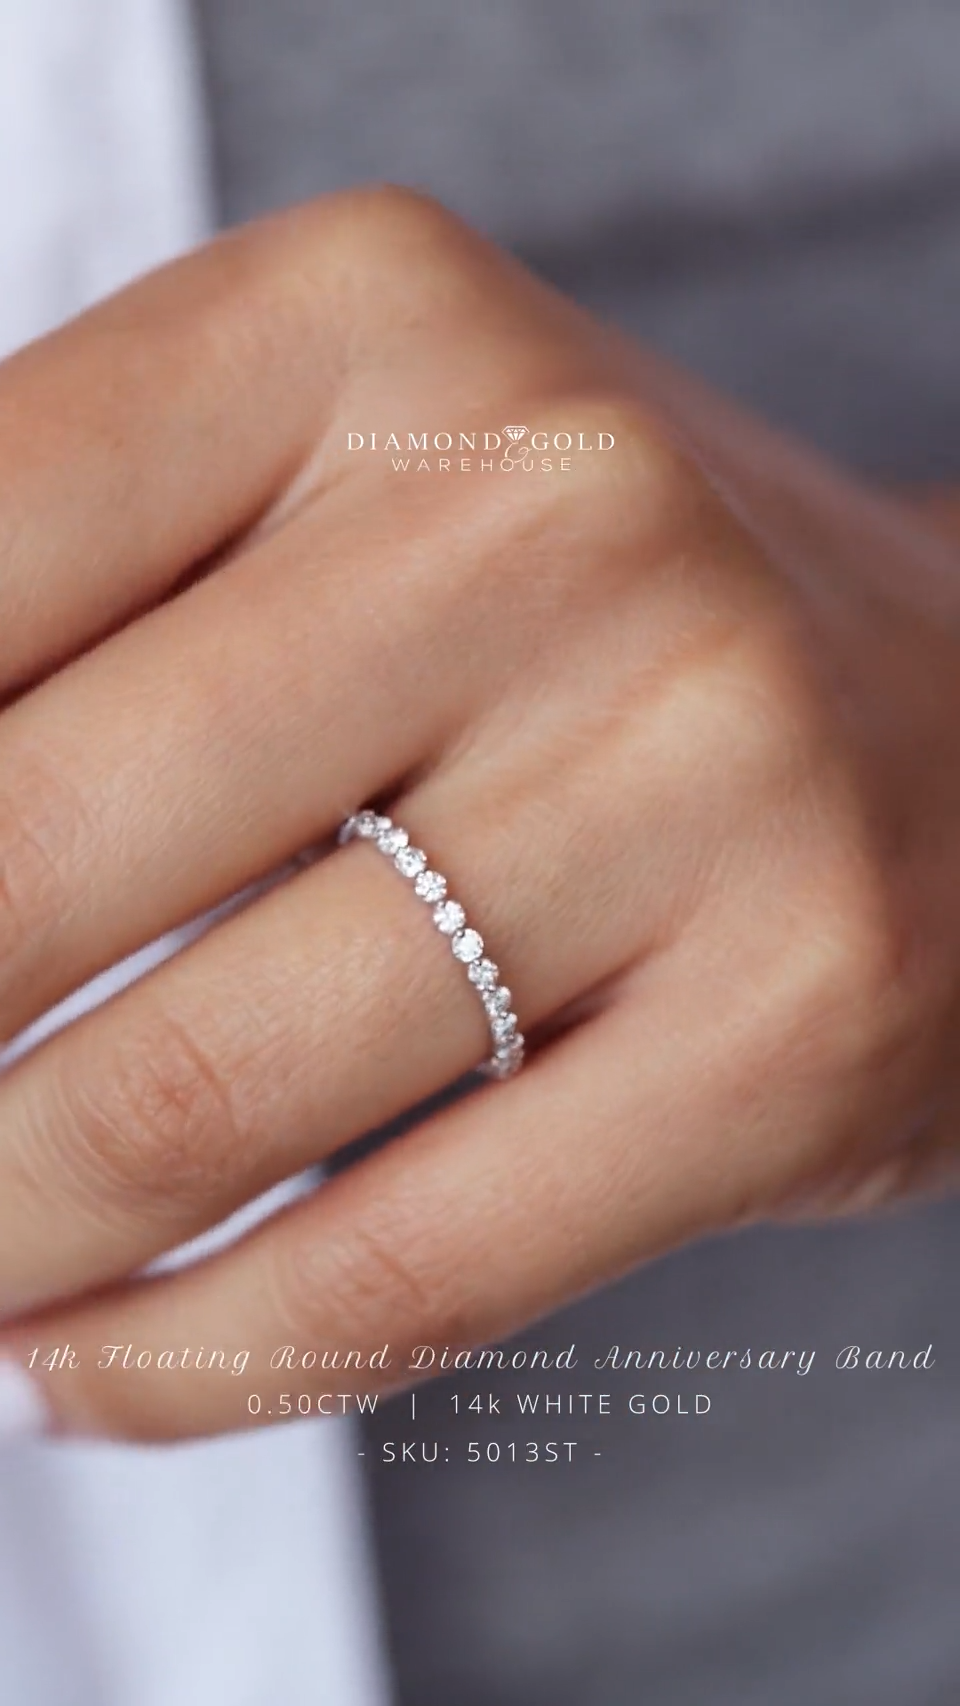 955 This Style Has Quickly Become Our 1 Requested Women S Wedding Ring Can A In 2020 Vintage Gold Engagement Rings Diamond Anniversary Bands Diamond Wedding Bands